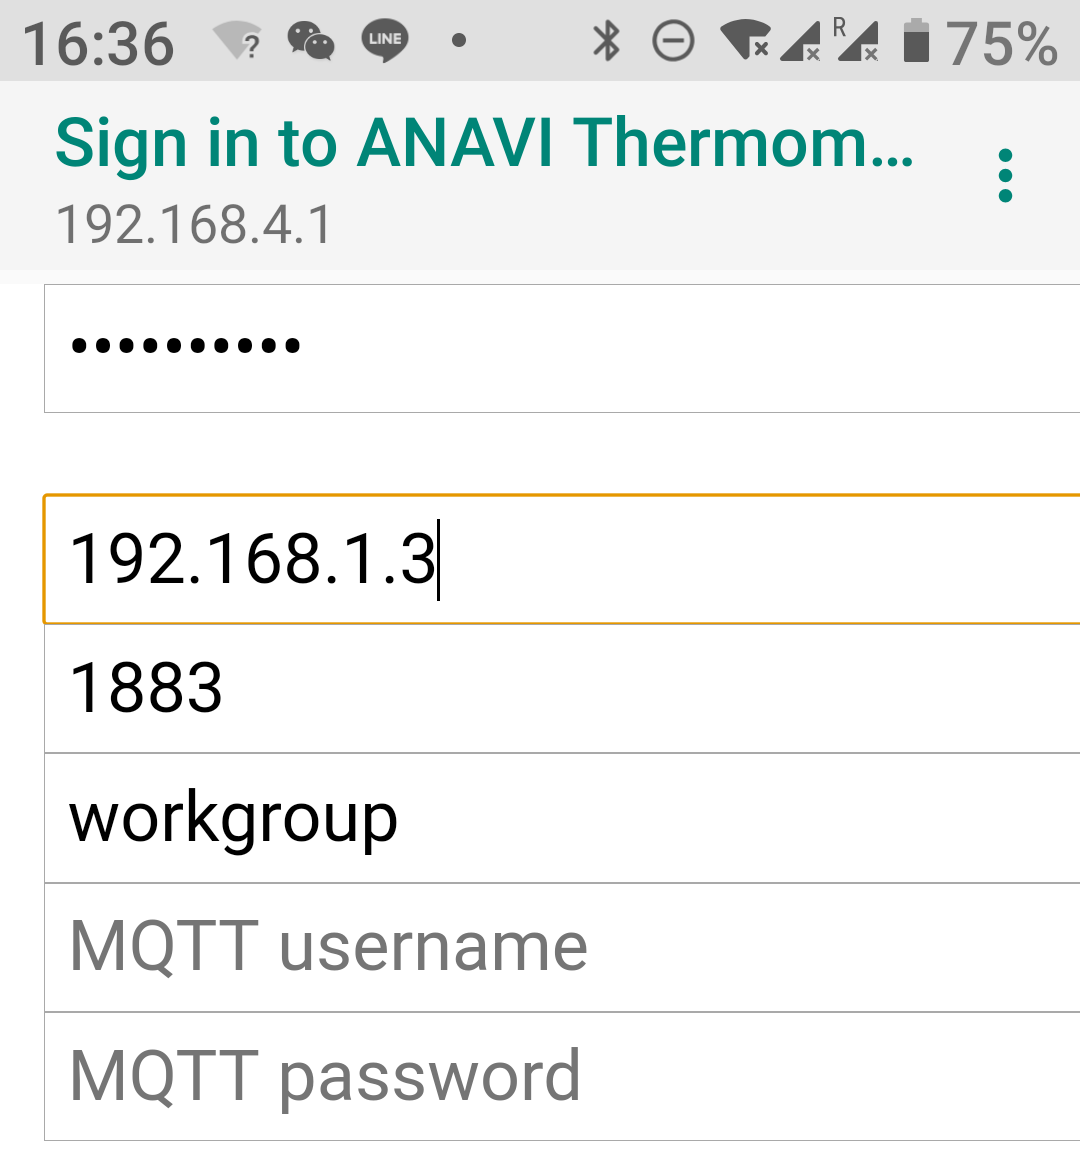 ANAVI Thermometer MQTT Server